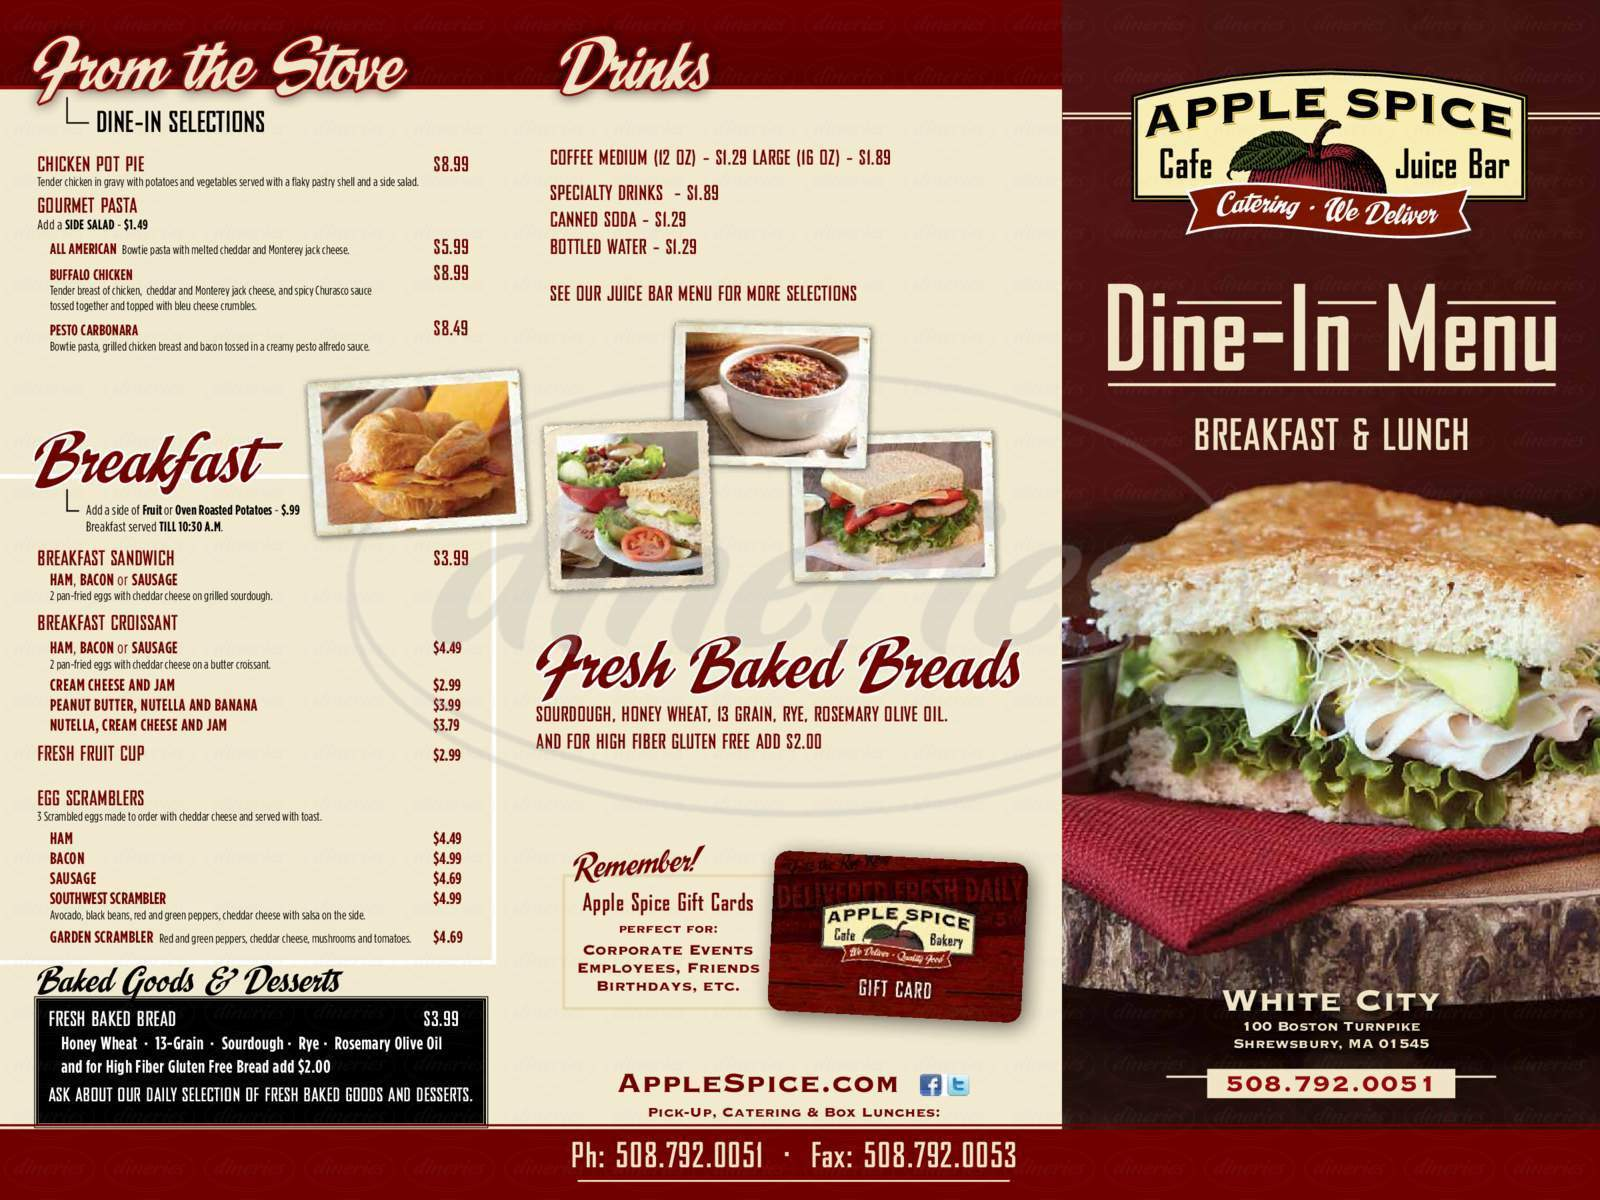 menu for Apple Spice Cafe & Juice Bar